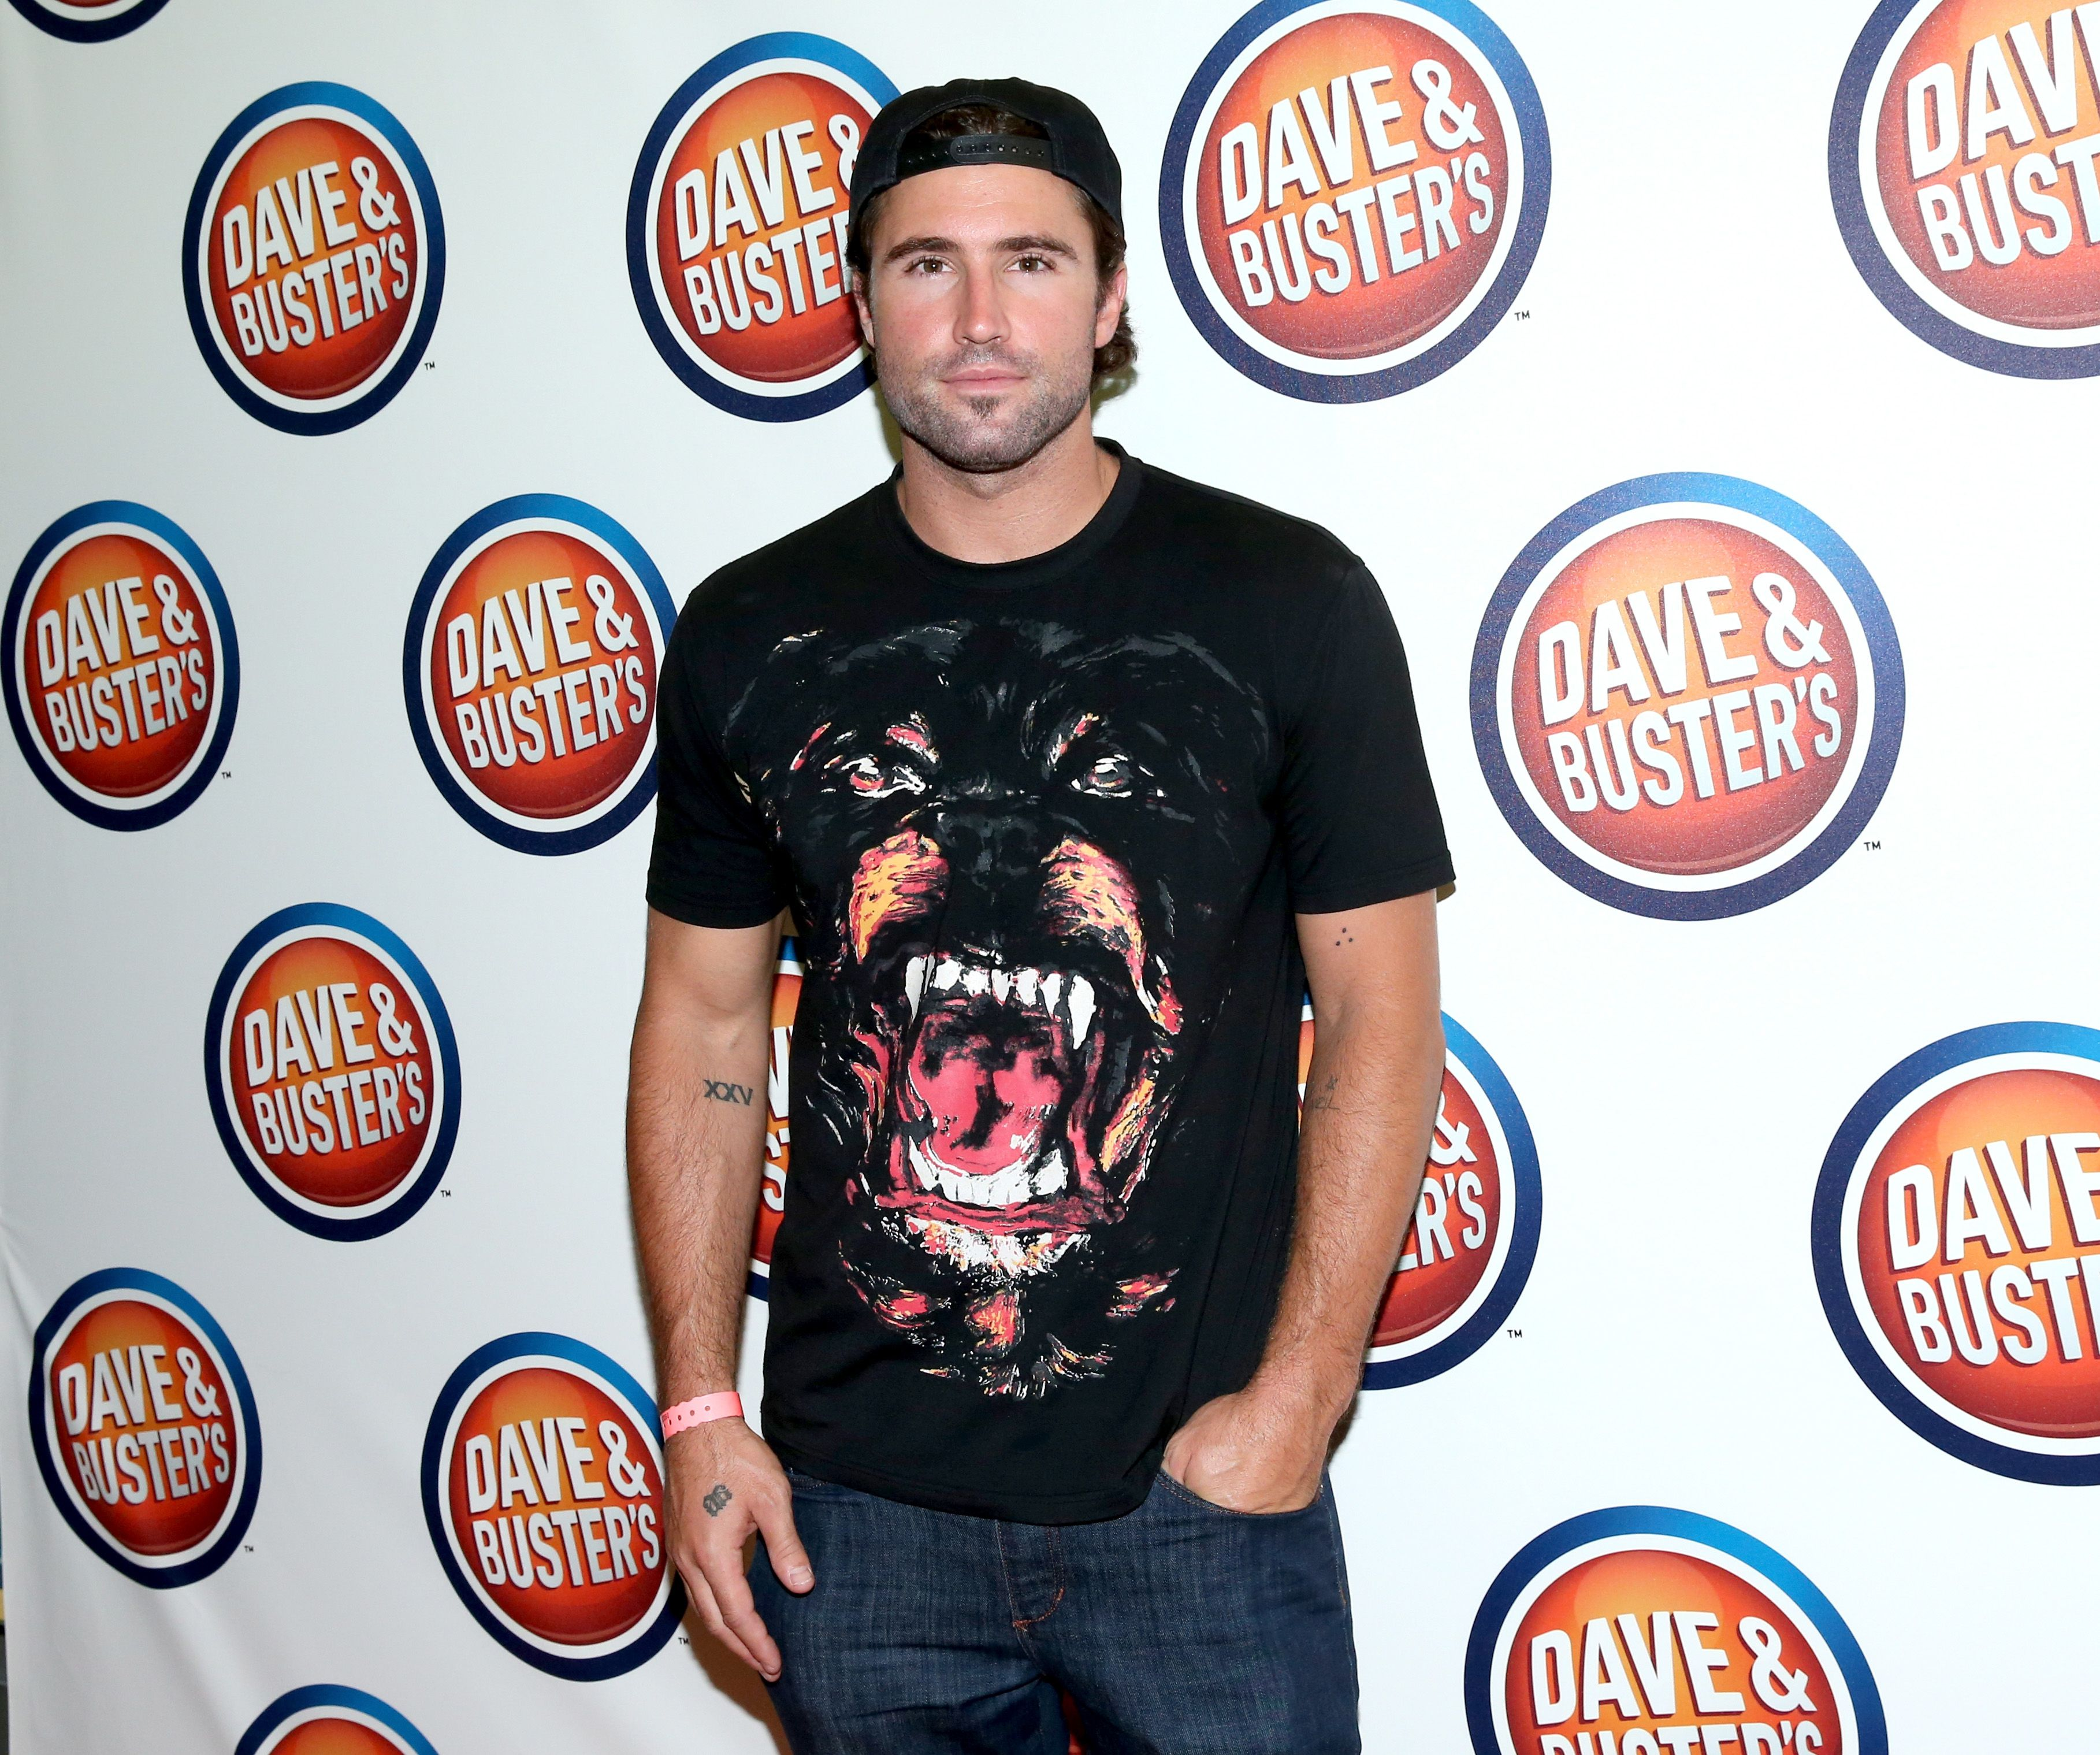 Brody Jenner for Dave & Buster's